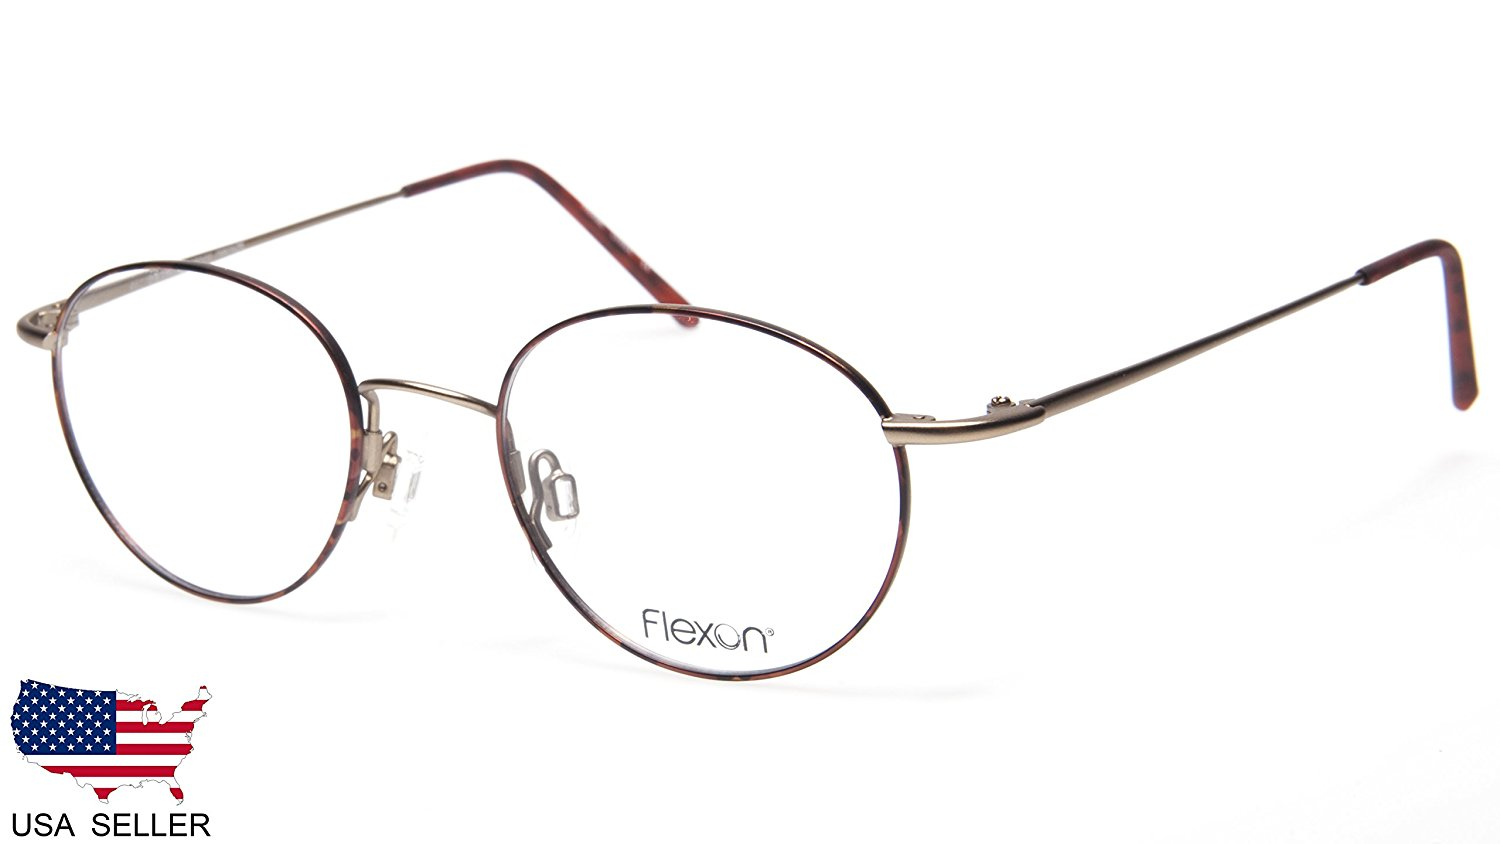 175654e756 Get Quotations · NEW FLEXON 623 215 TORTOISE BRONZE EYEGLASSES GLASSES  FRAME 46-19-135 B39mm